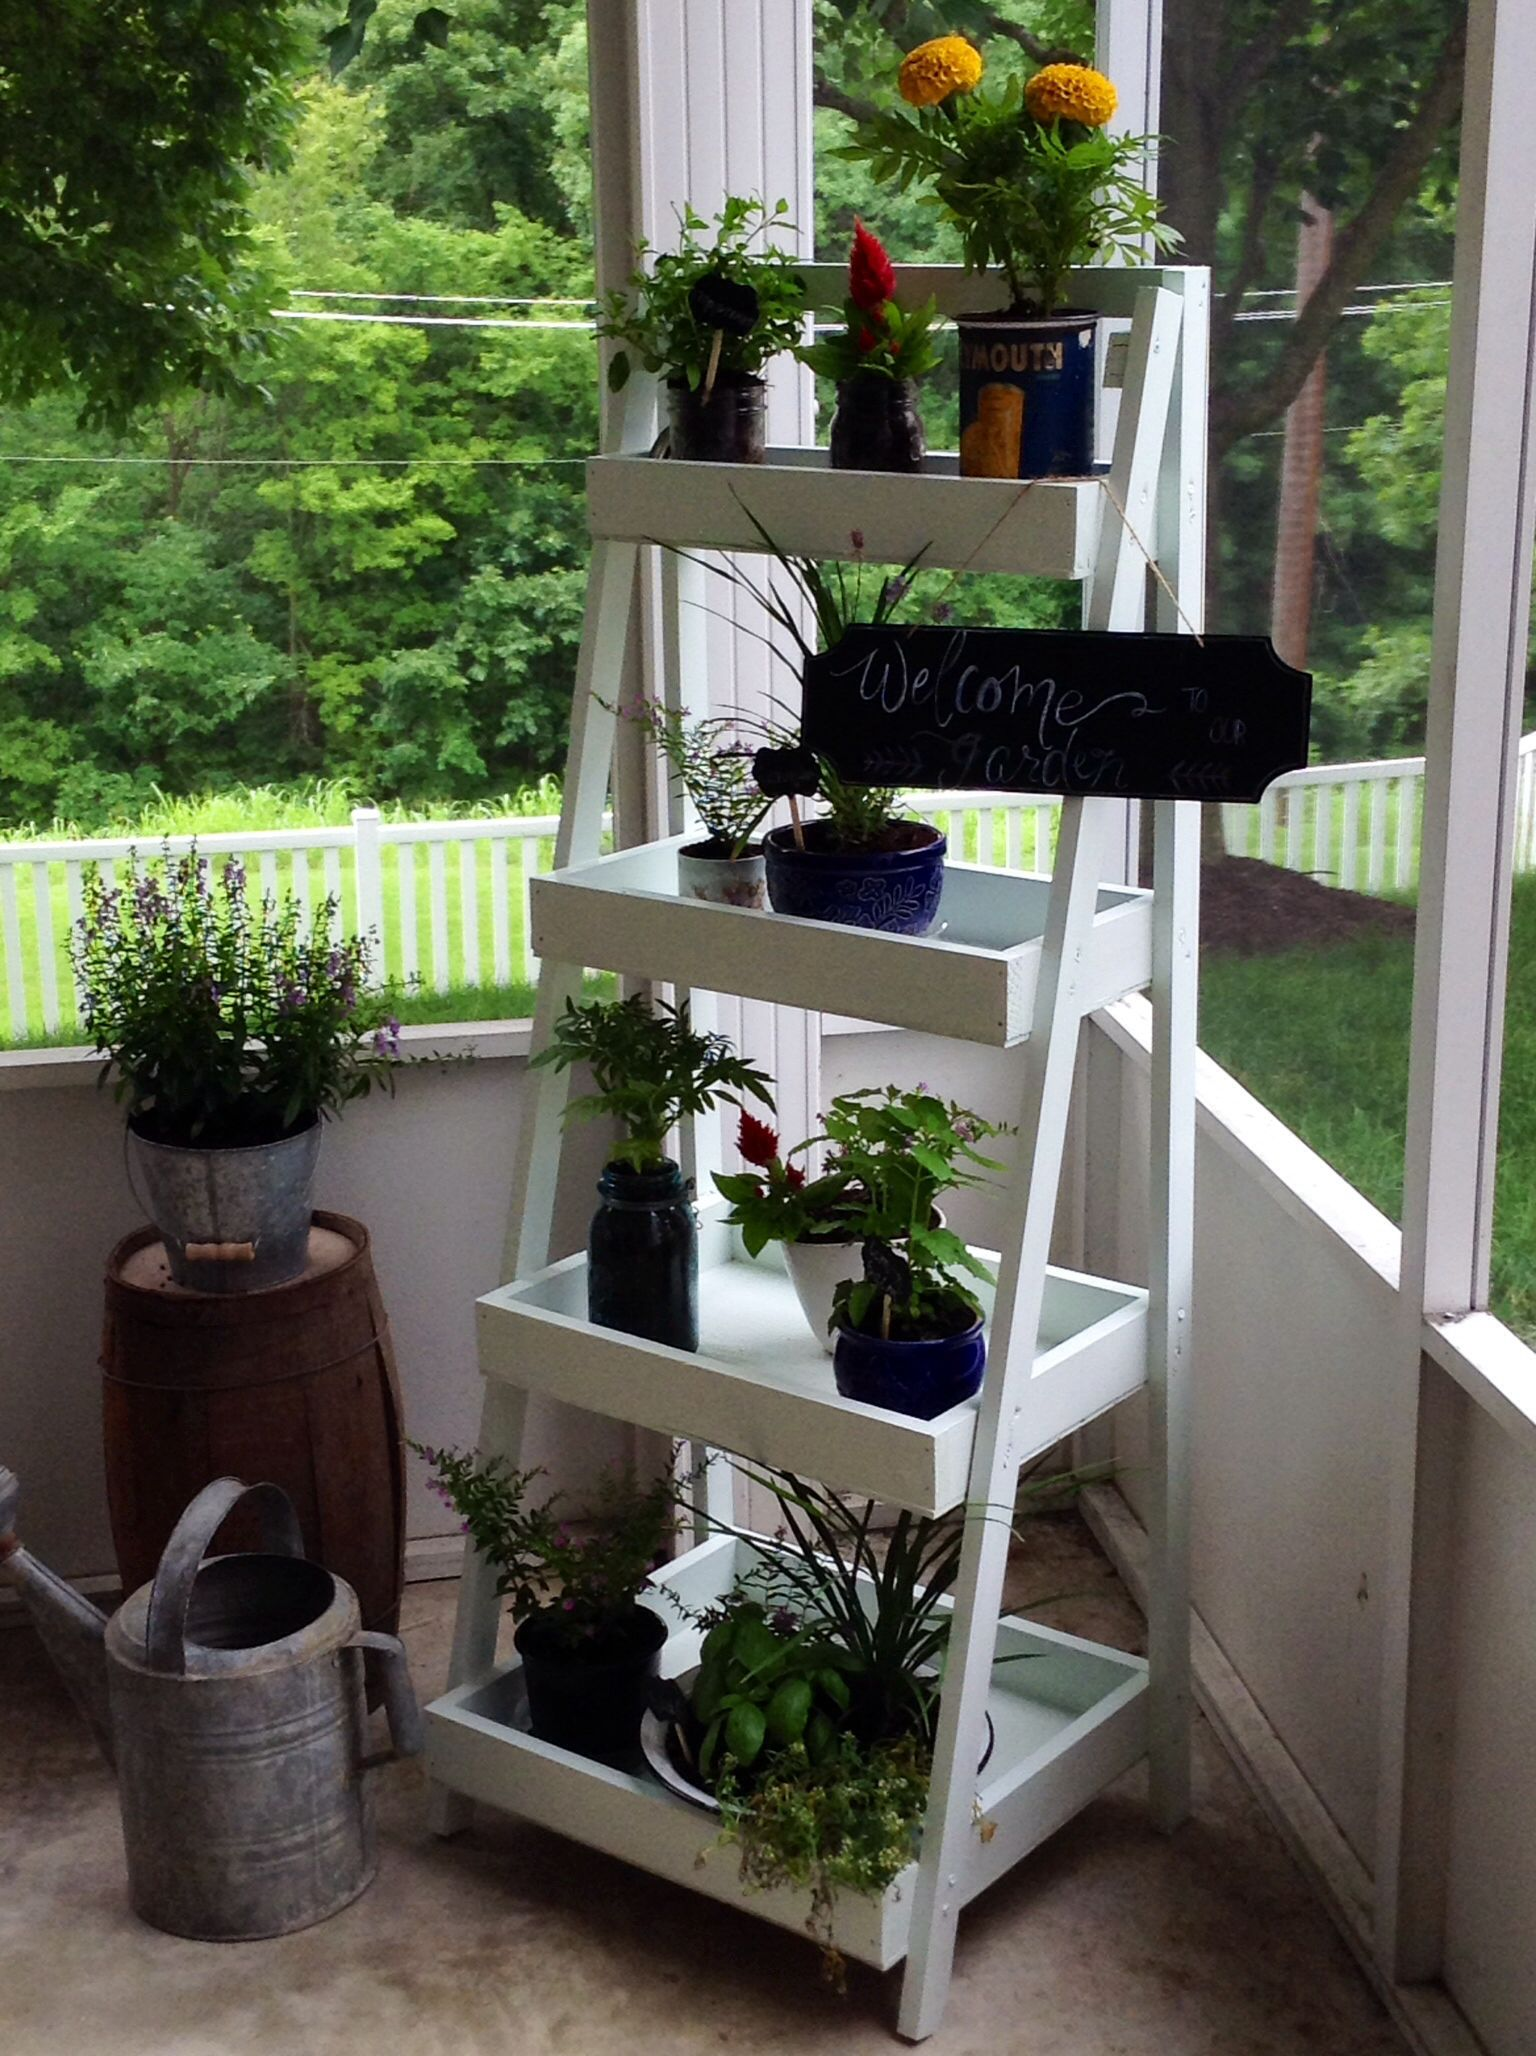 Diy plant stand made from ana white plans garden shed